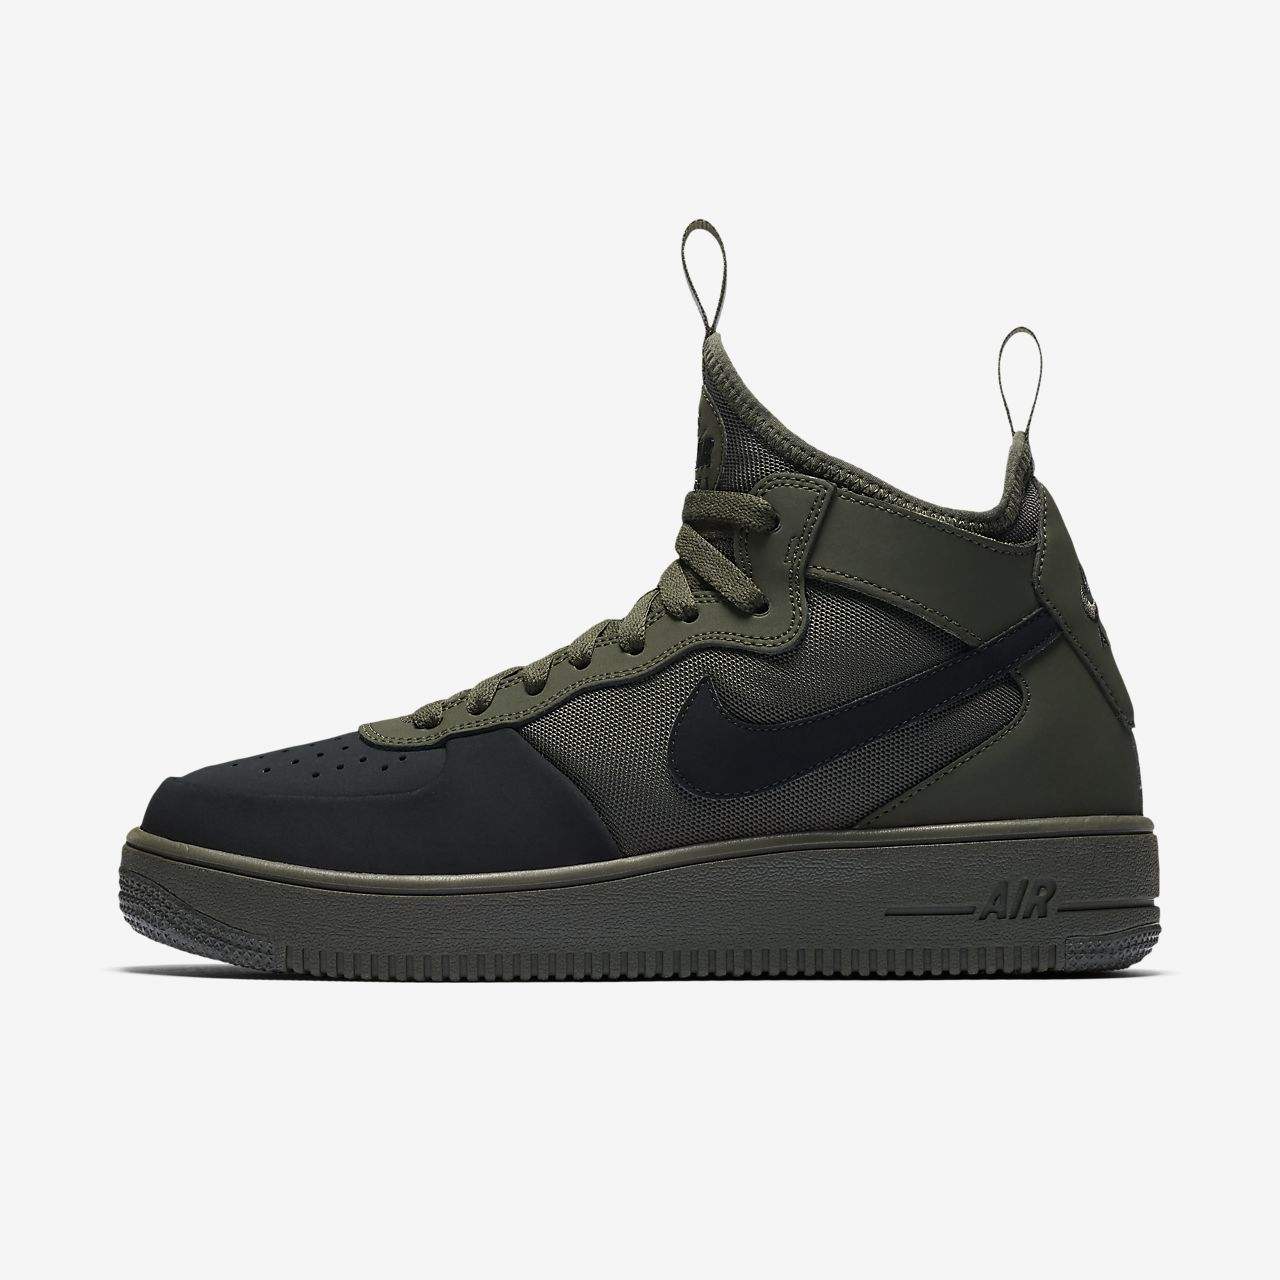 nike air force 1 ultra force mid tech provincial. Black Bedroom Furniture Sets. Home Design Ideas